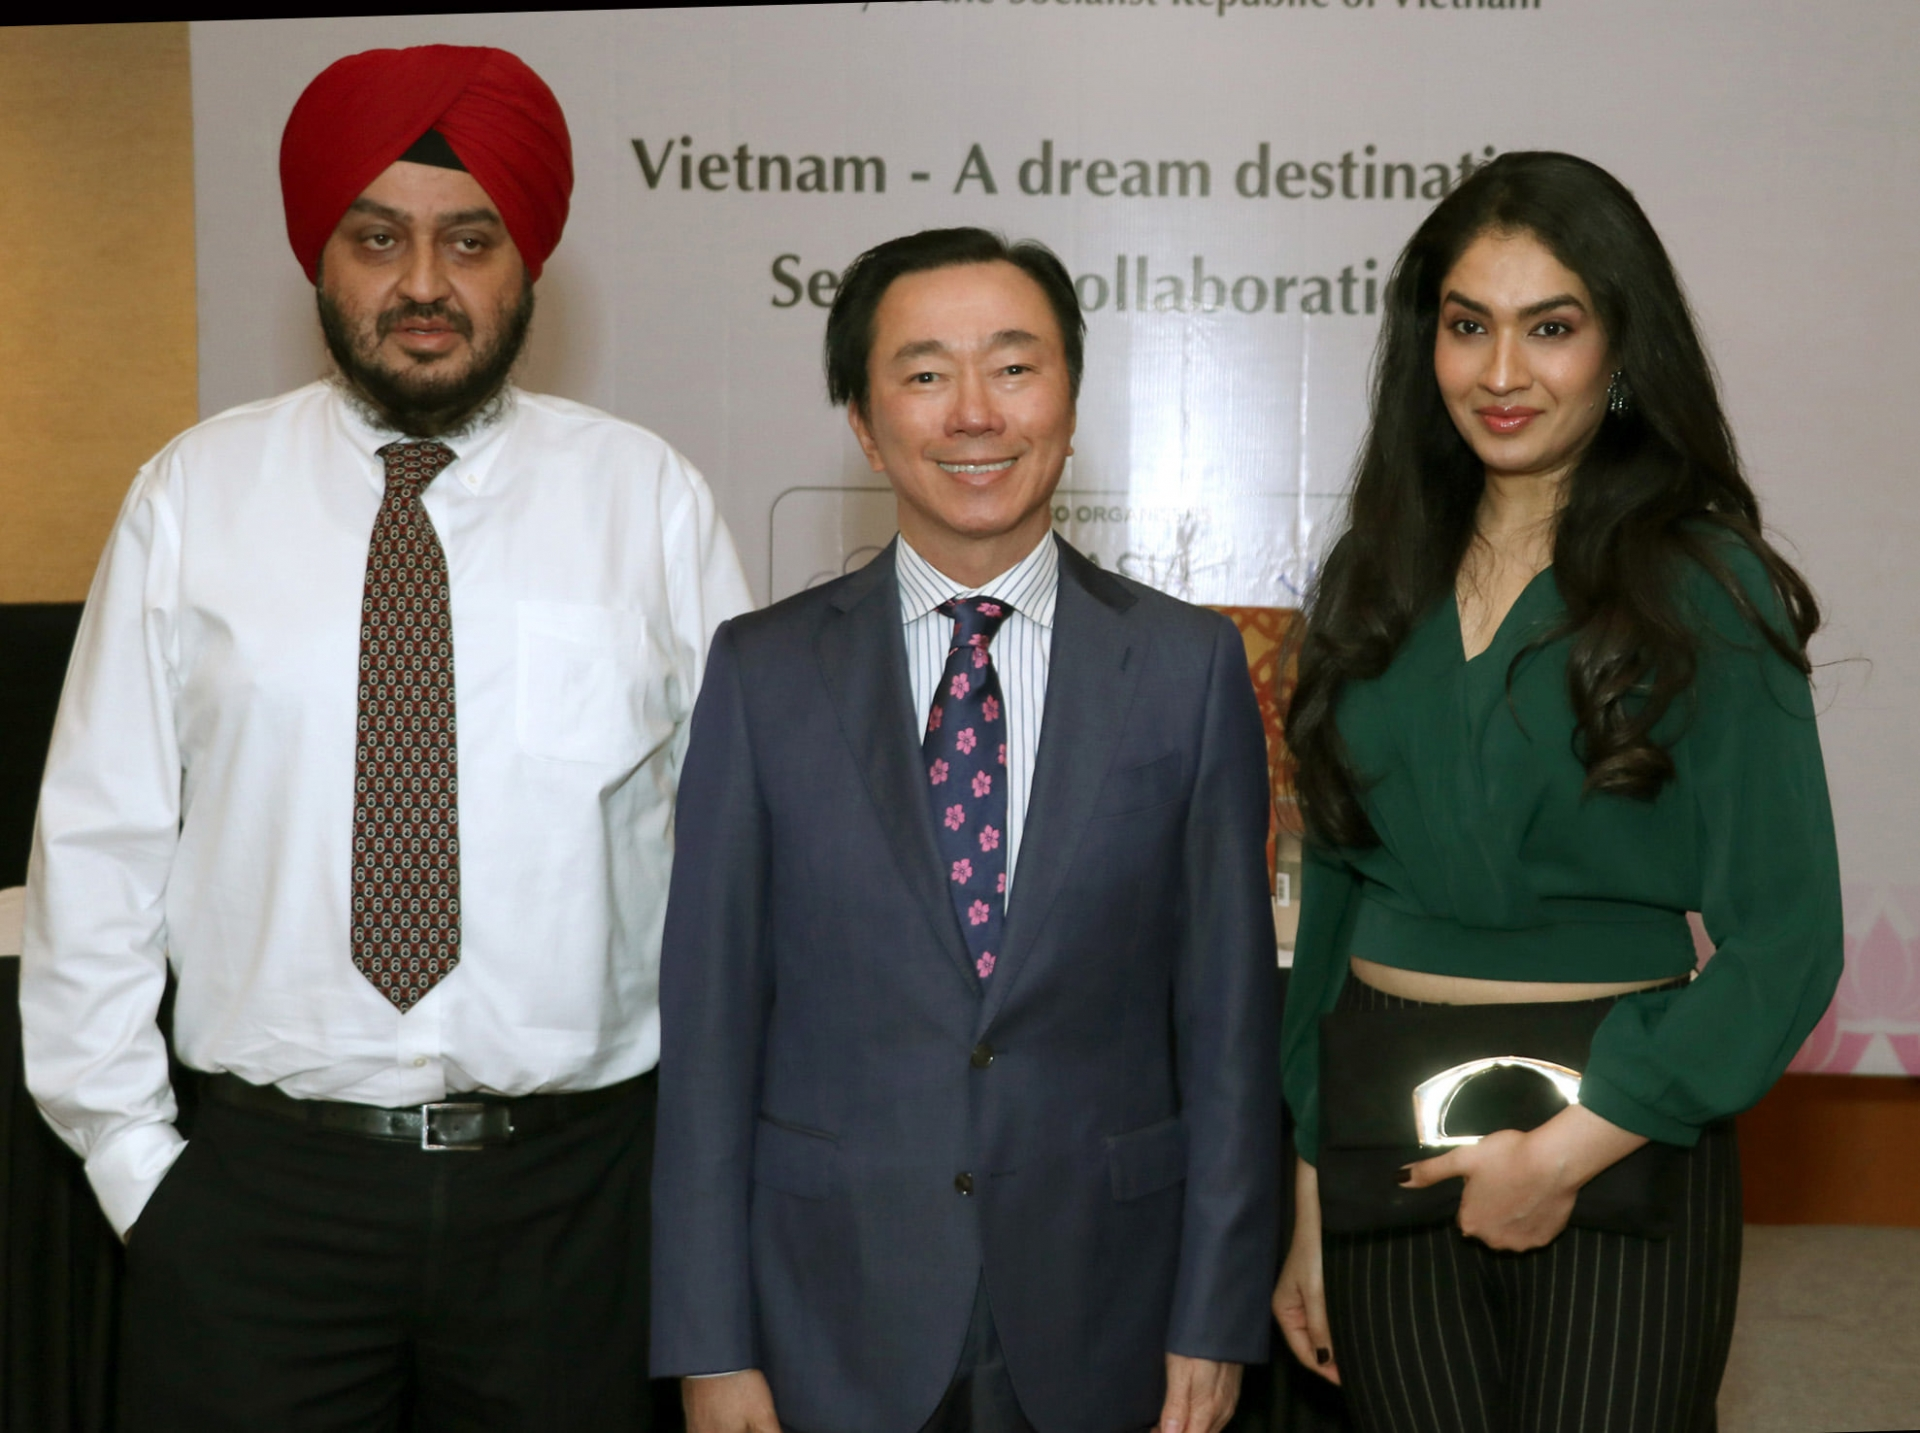 Vietnam's tourism promoted in india's city with highest per capita income